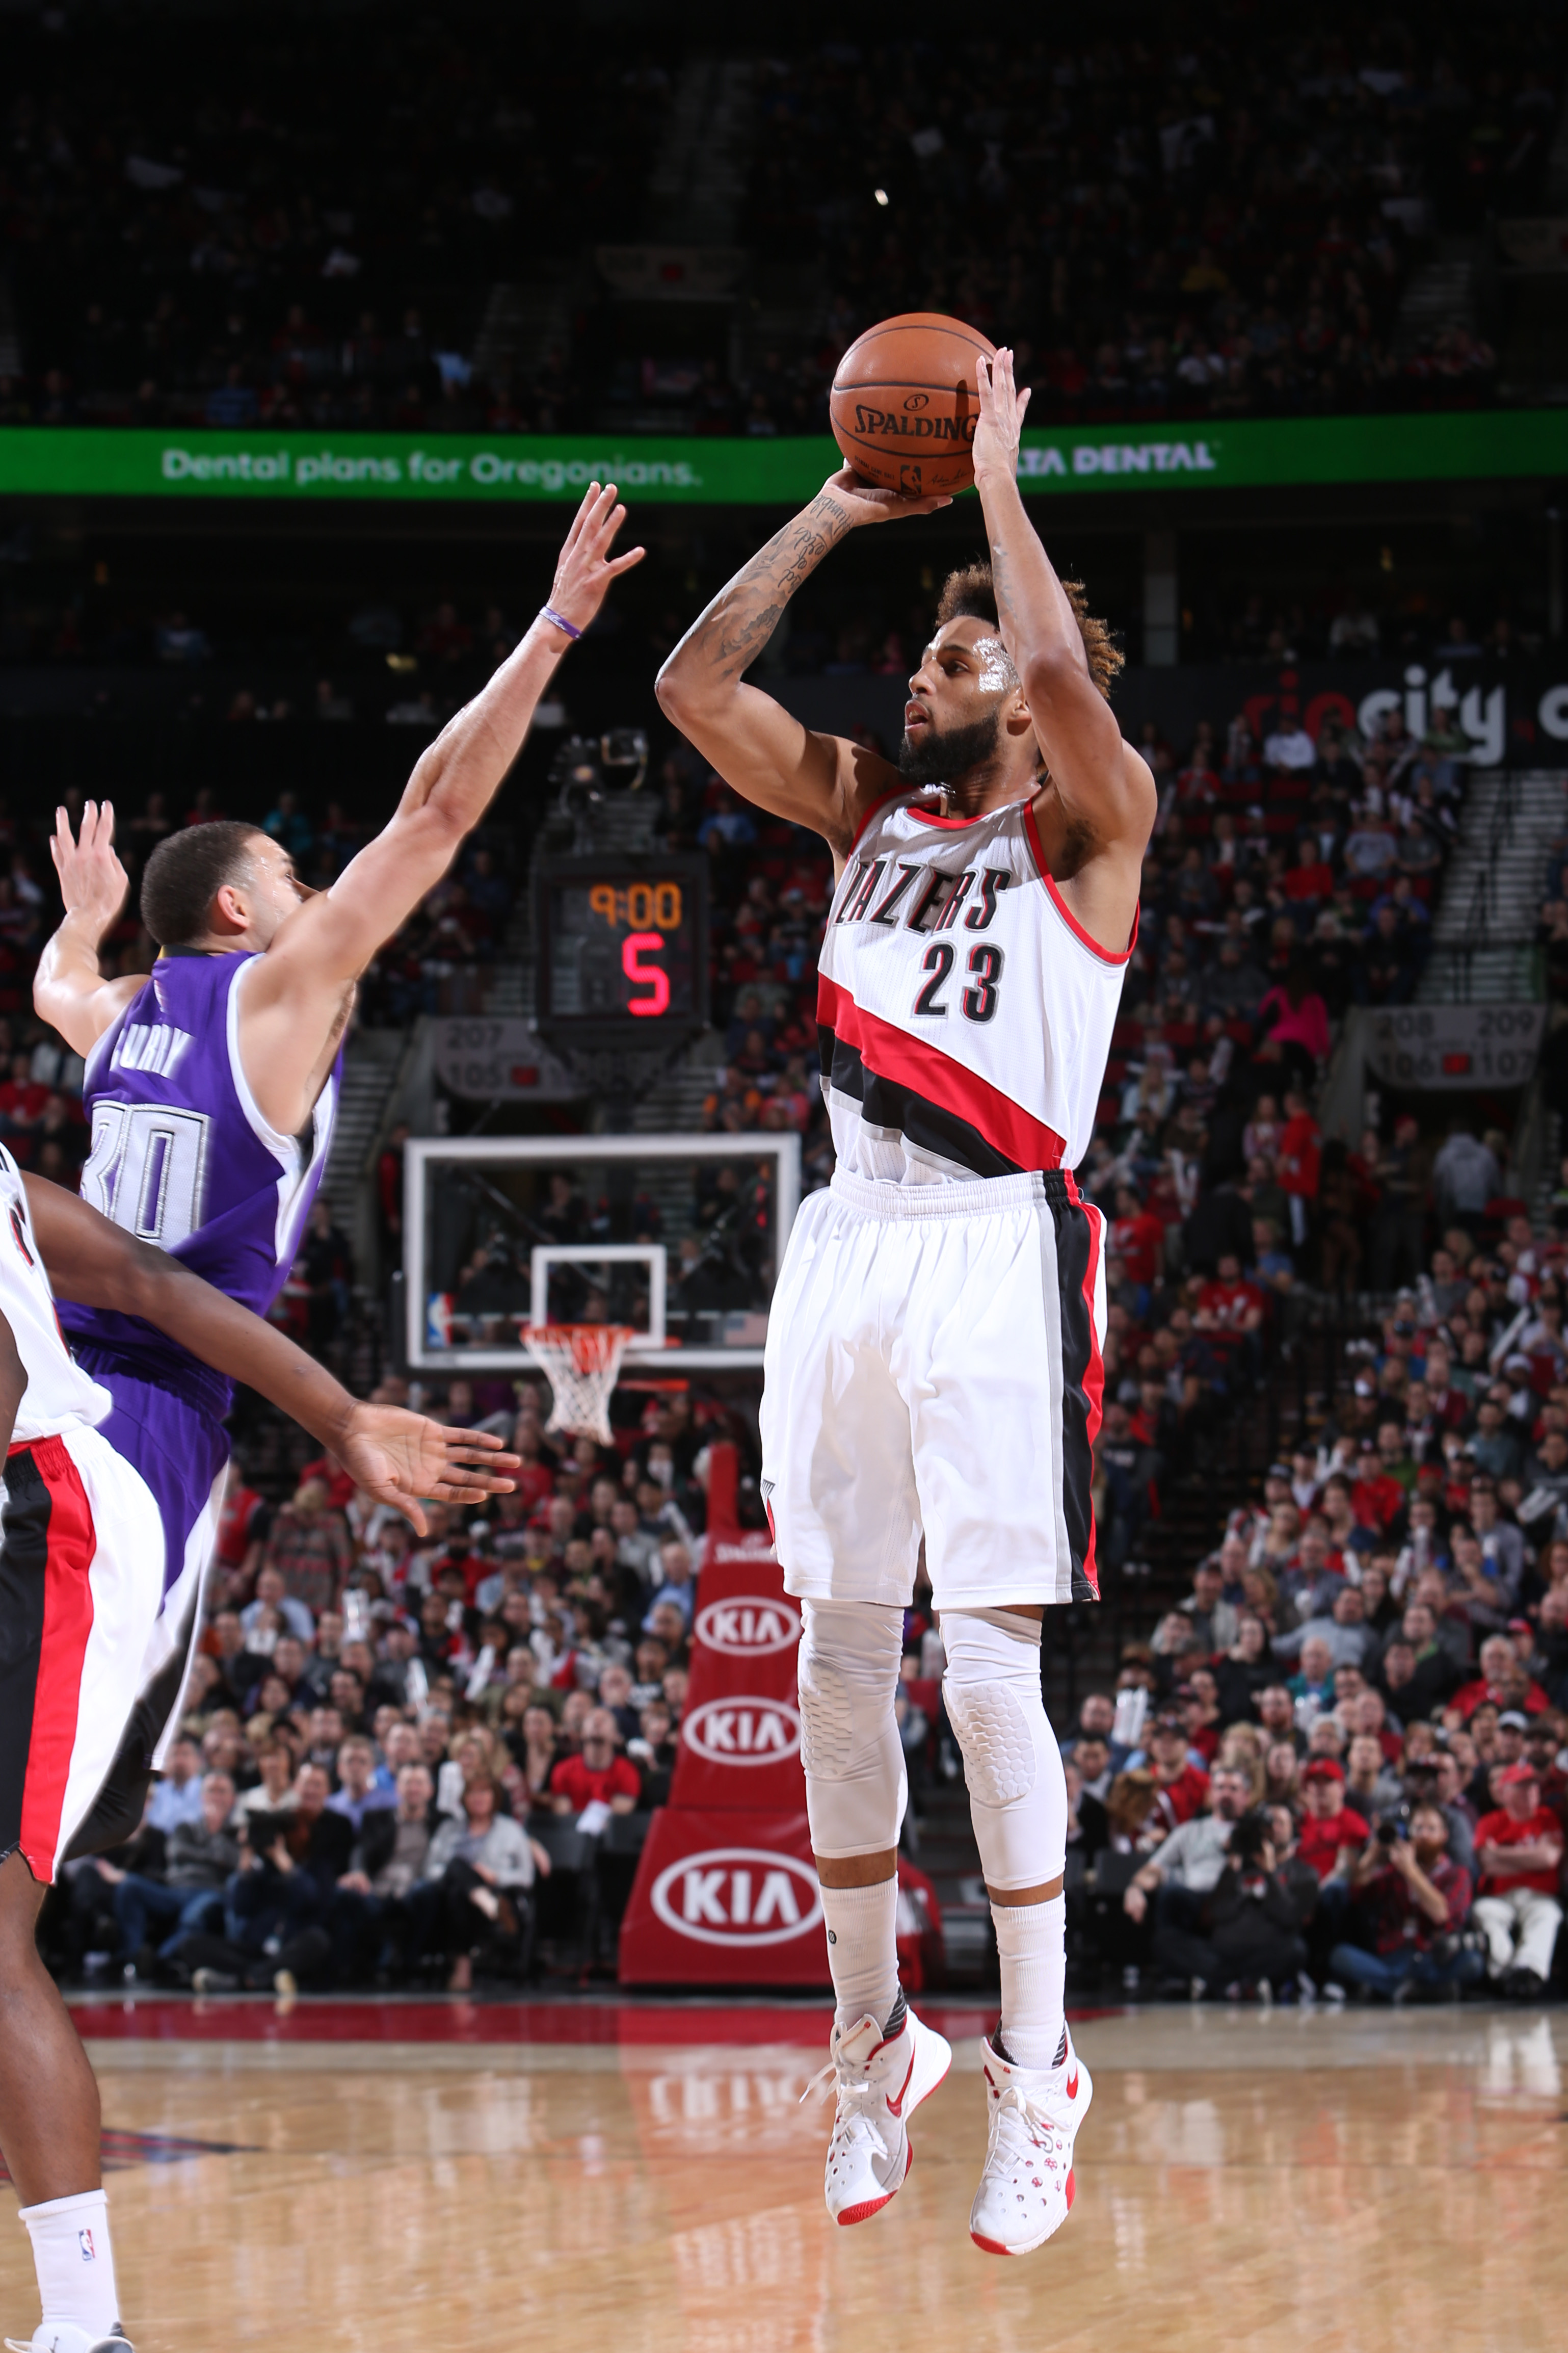 PORTLAND, OR  - MARCH 28: Allen Crabbe #23 of the Portland Trail Blazers shoots against the Sacramento Kings during the game on March 28, 2016 at Moda Center in Portland, Oregon. (Photo by Sam Forencich/NBAE via Getty Images)